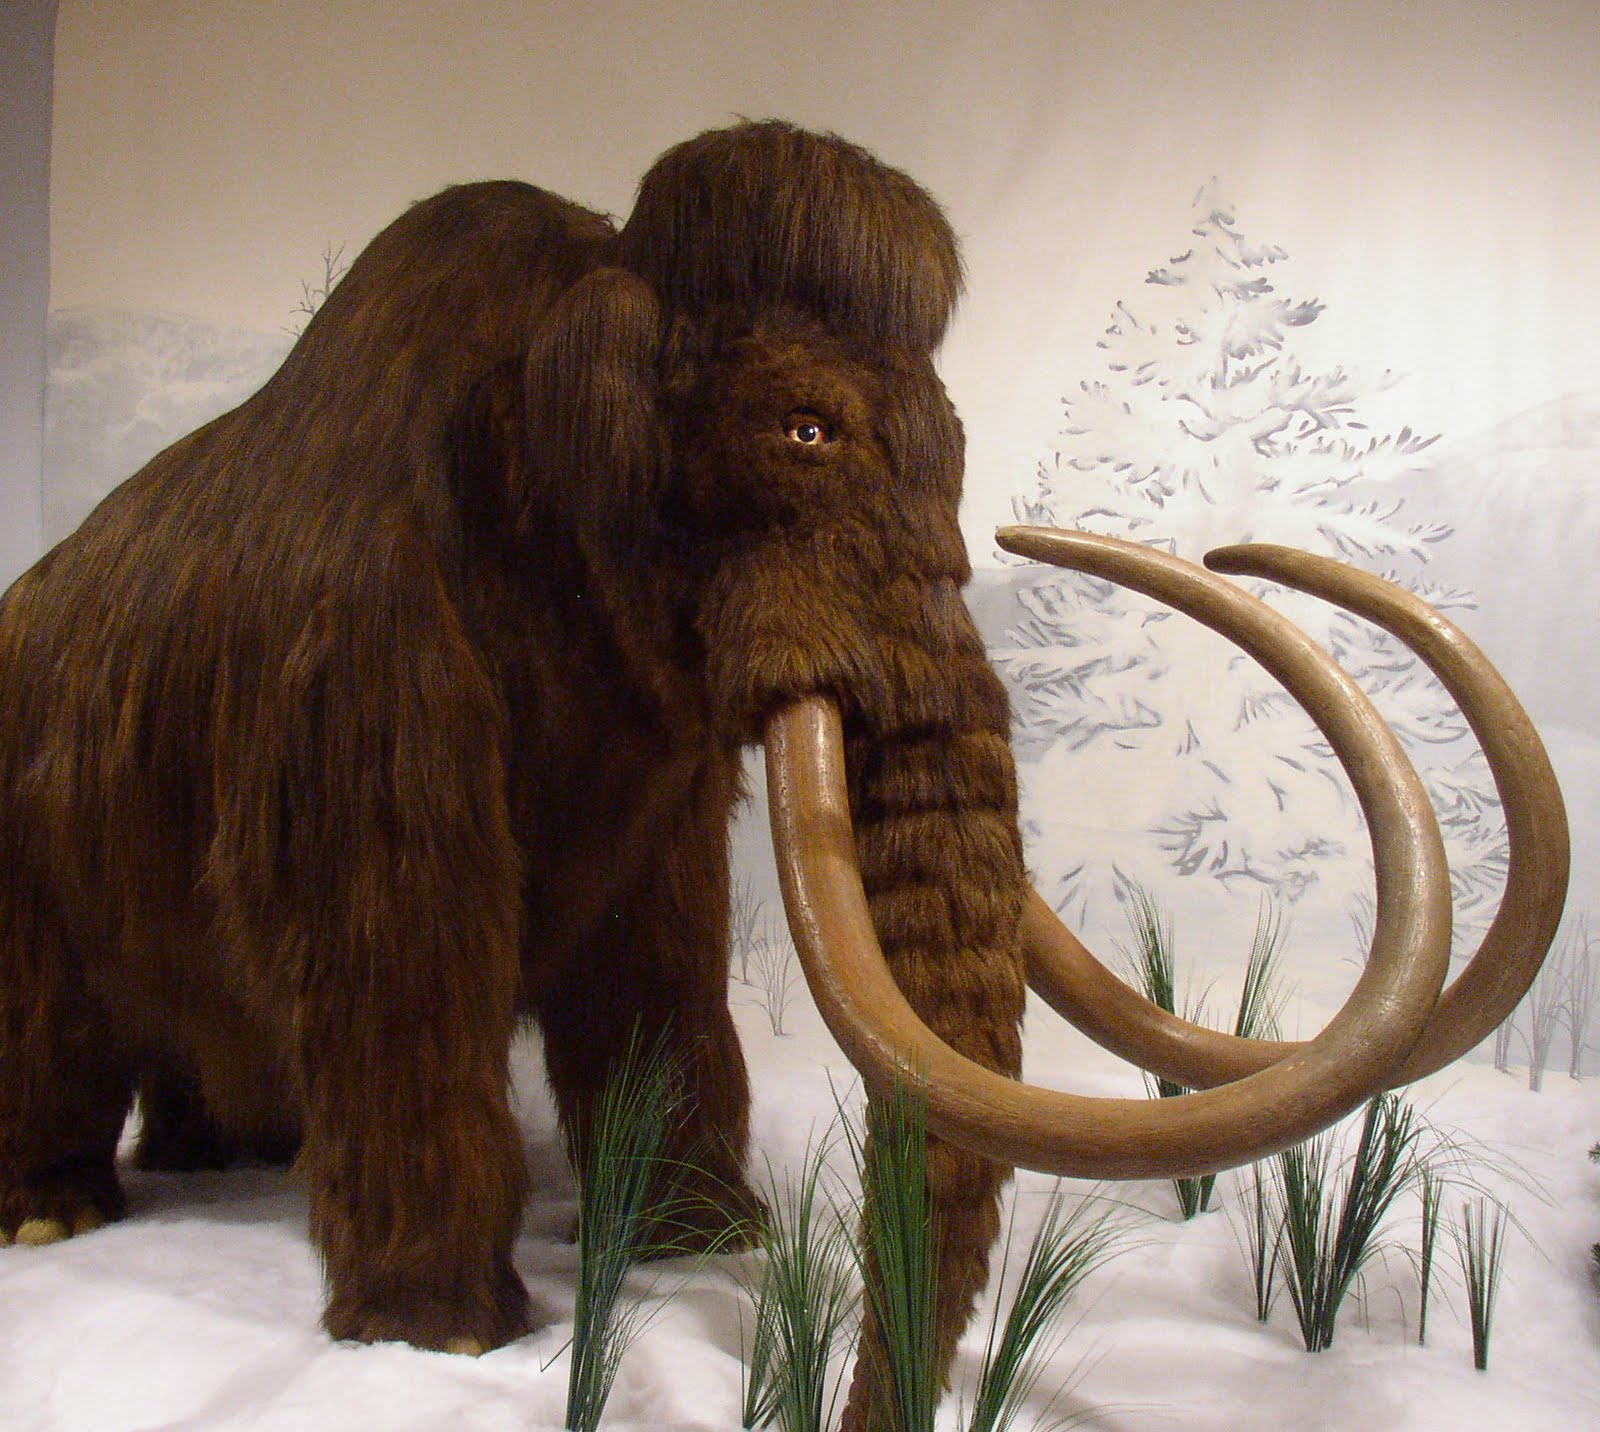 wooly mammoth by silentravyn - photo #16